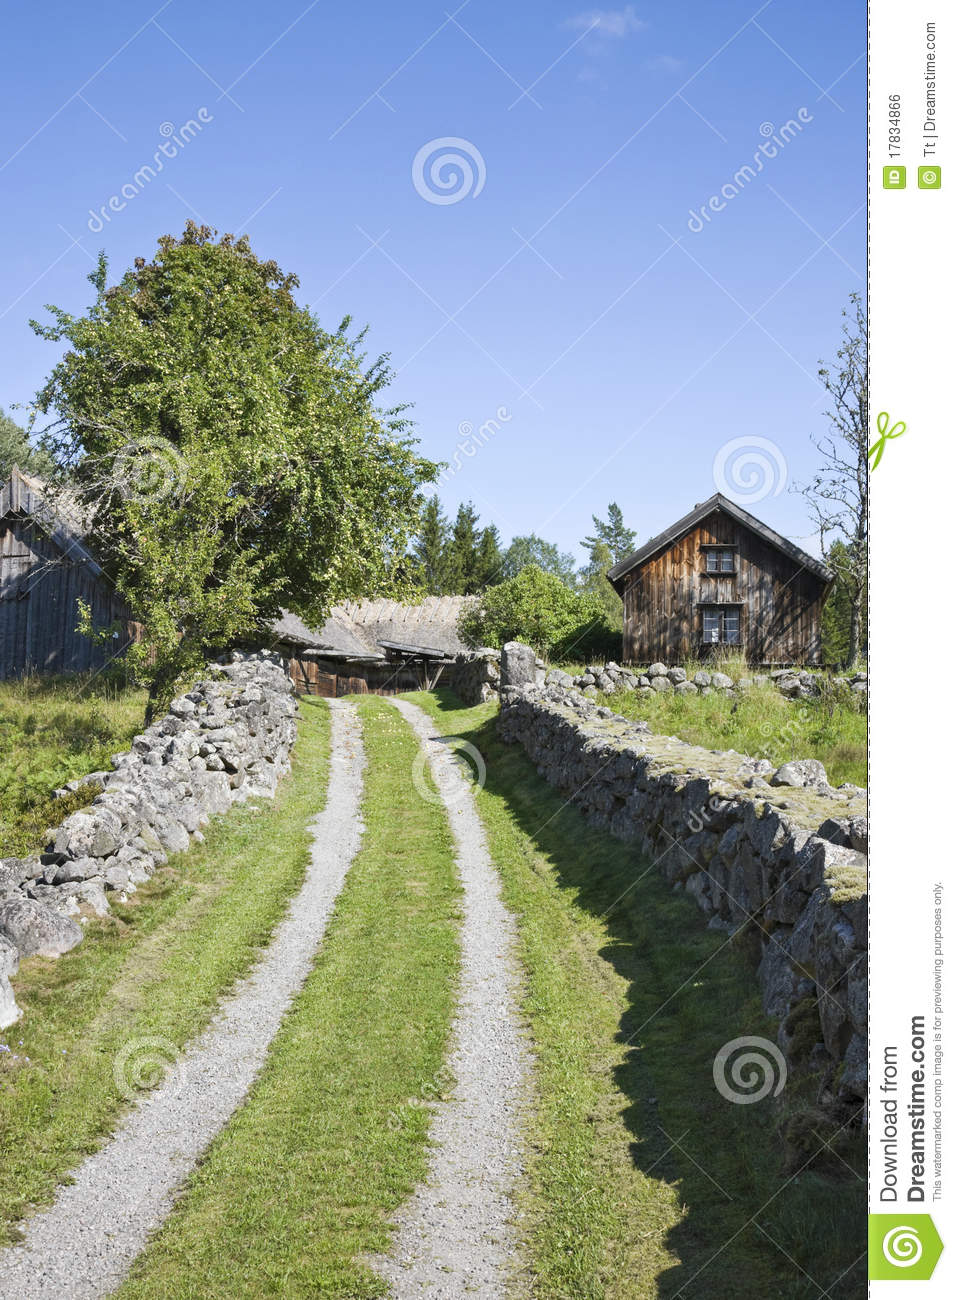 Landscaping Around An Old Farmhouse : Old farm landscape royalty free stock image